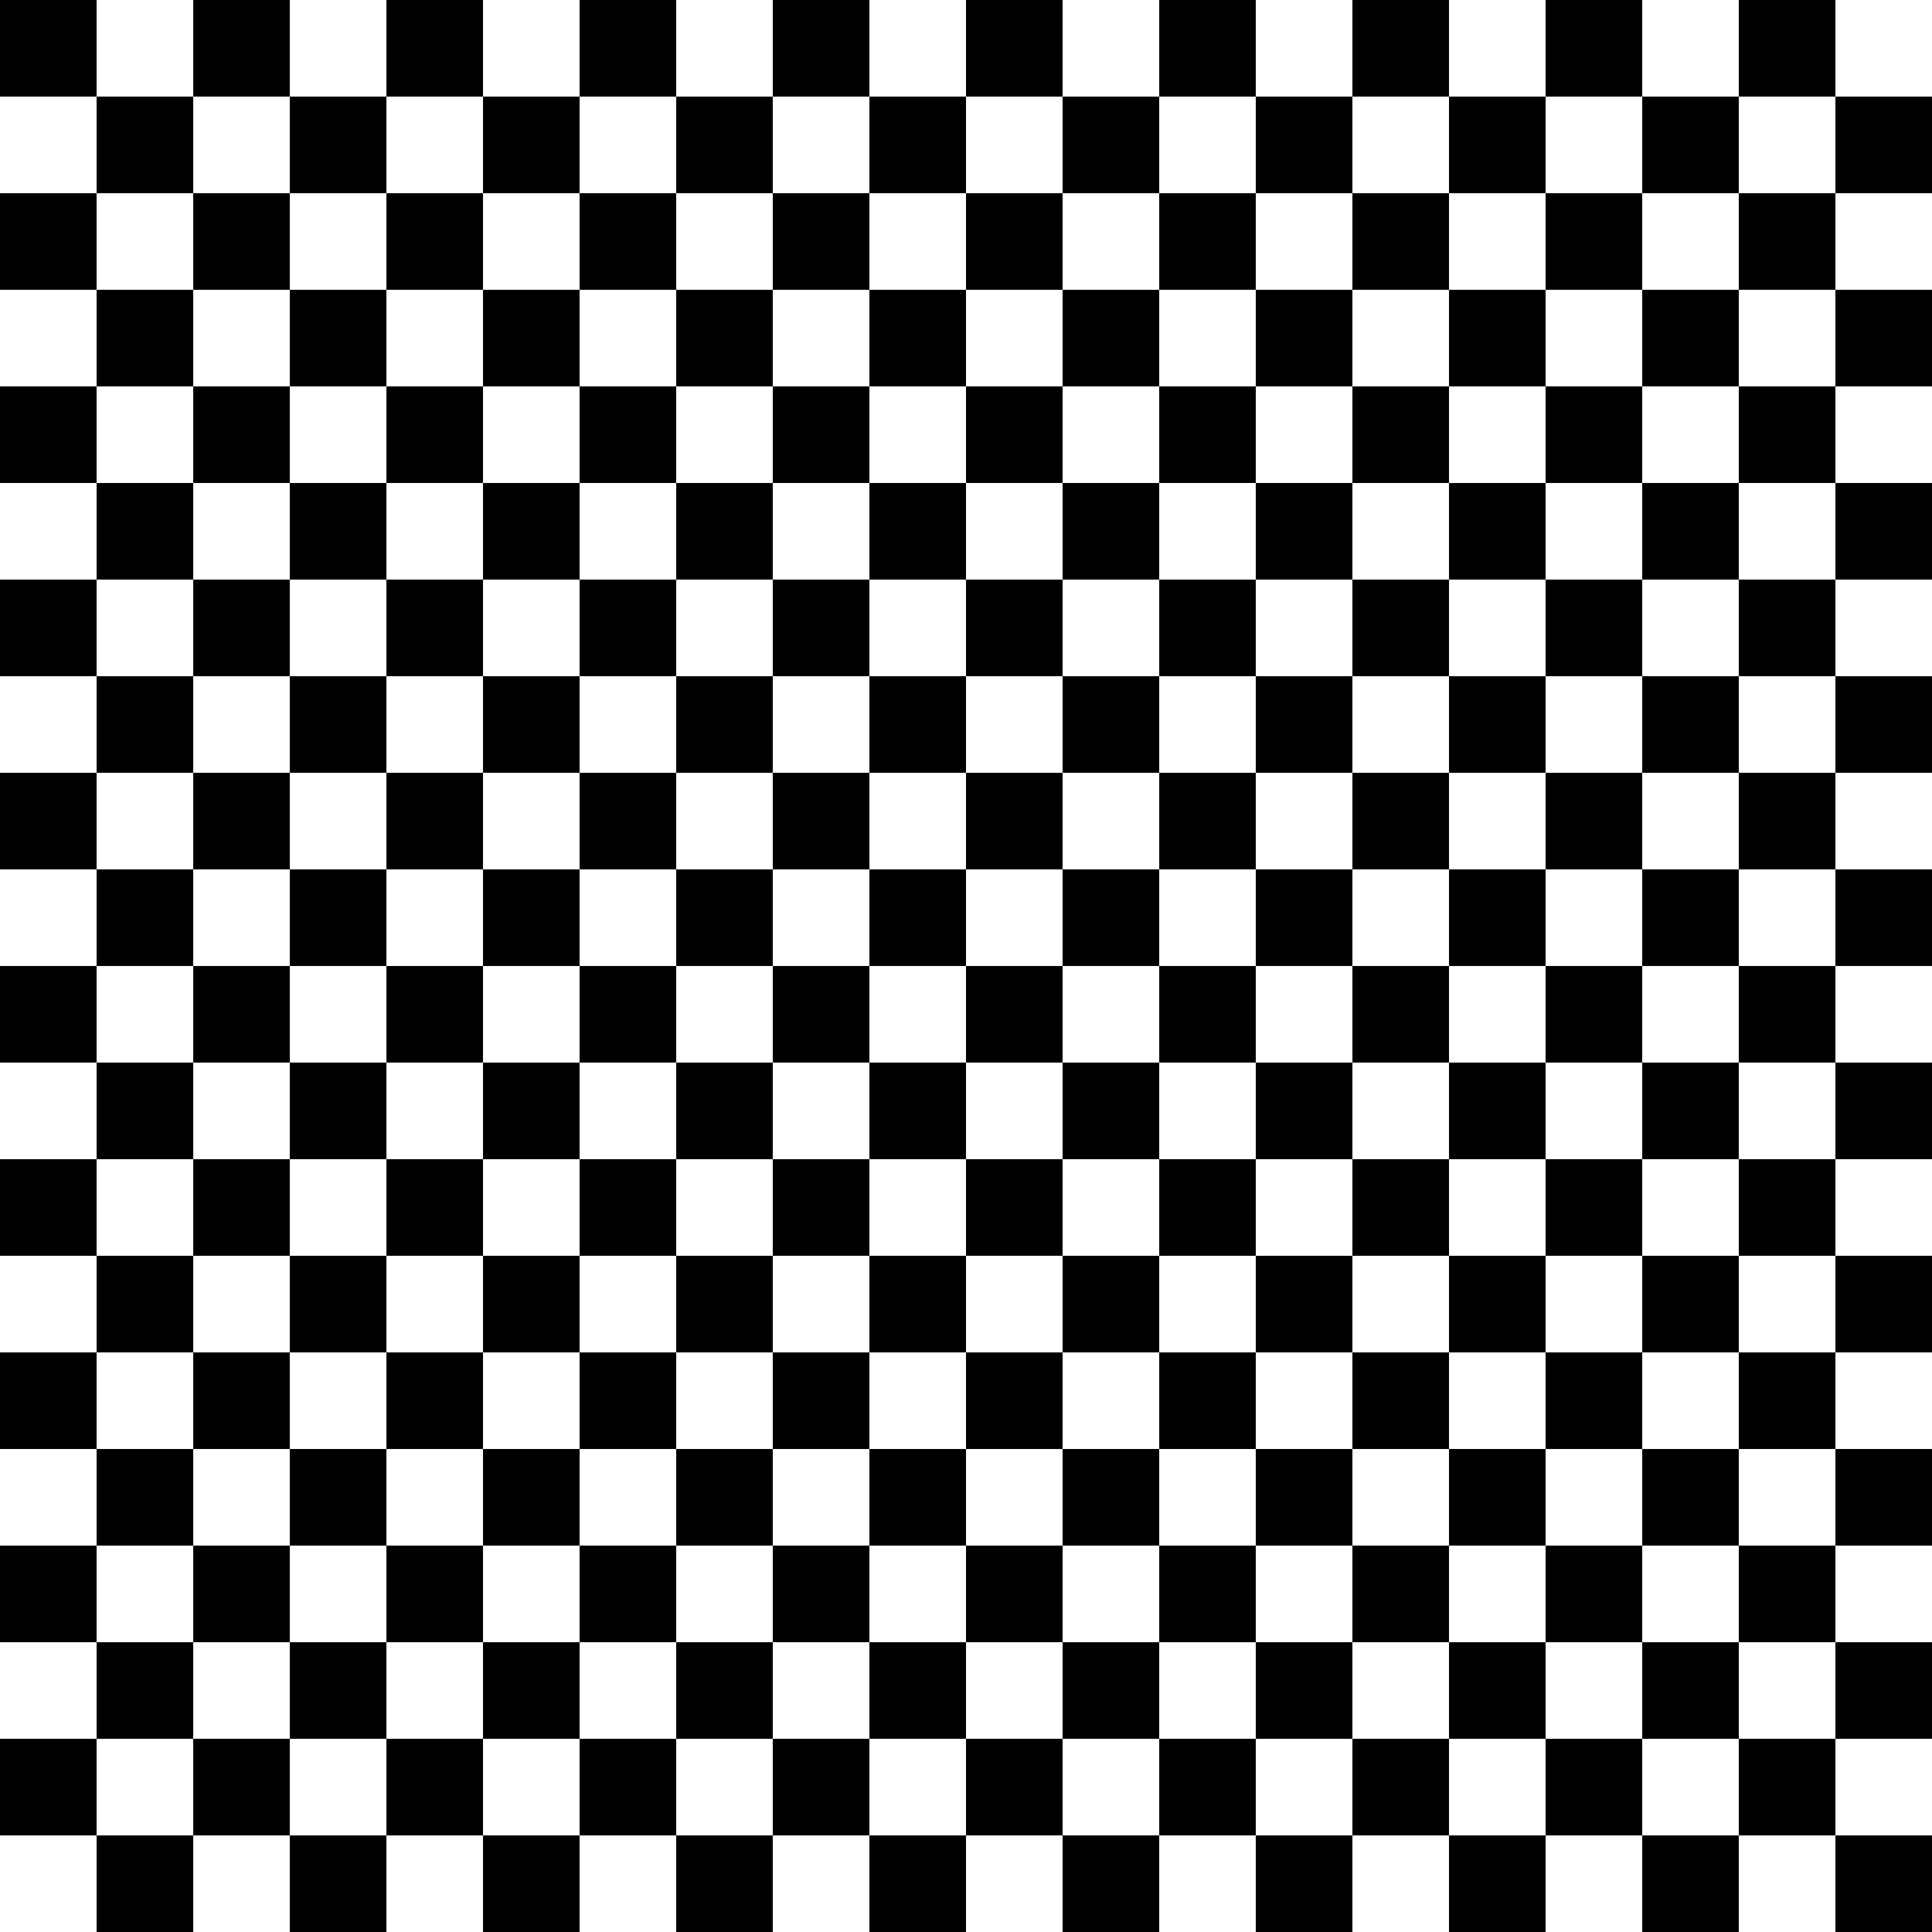 black and white checkerboard pattern free clip art. Black Bedroom Furniture Sets. Home Design Ideas